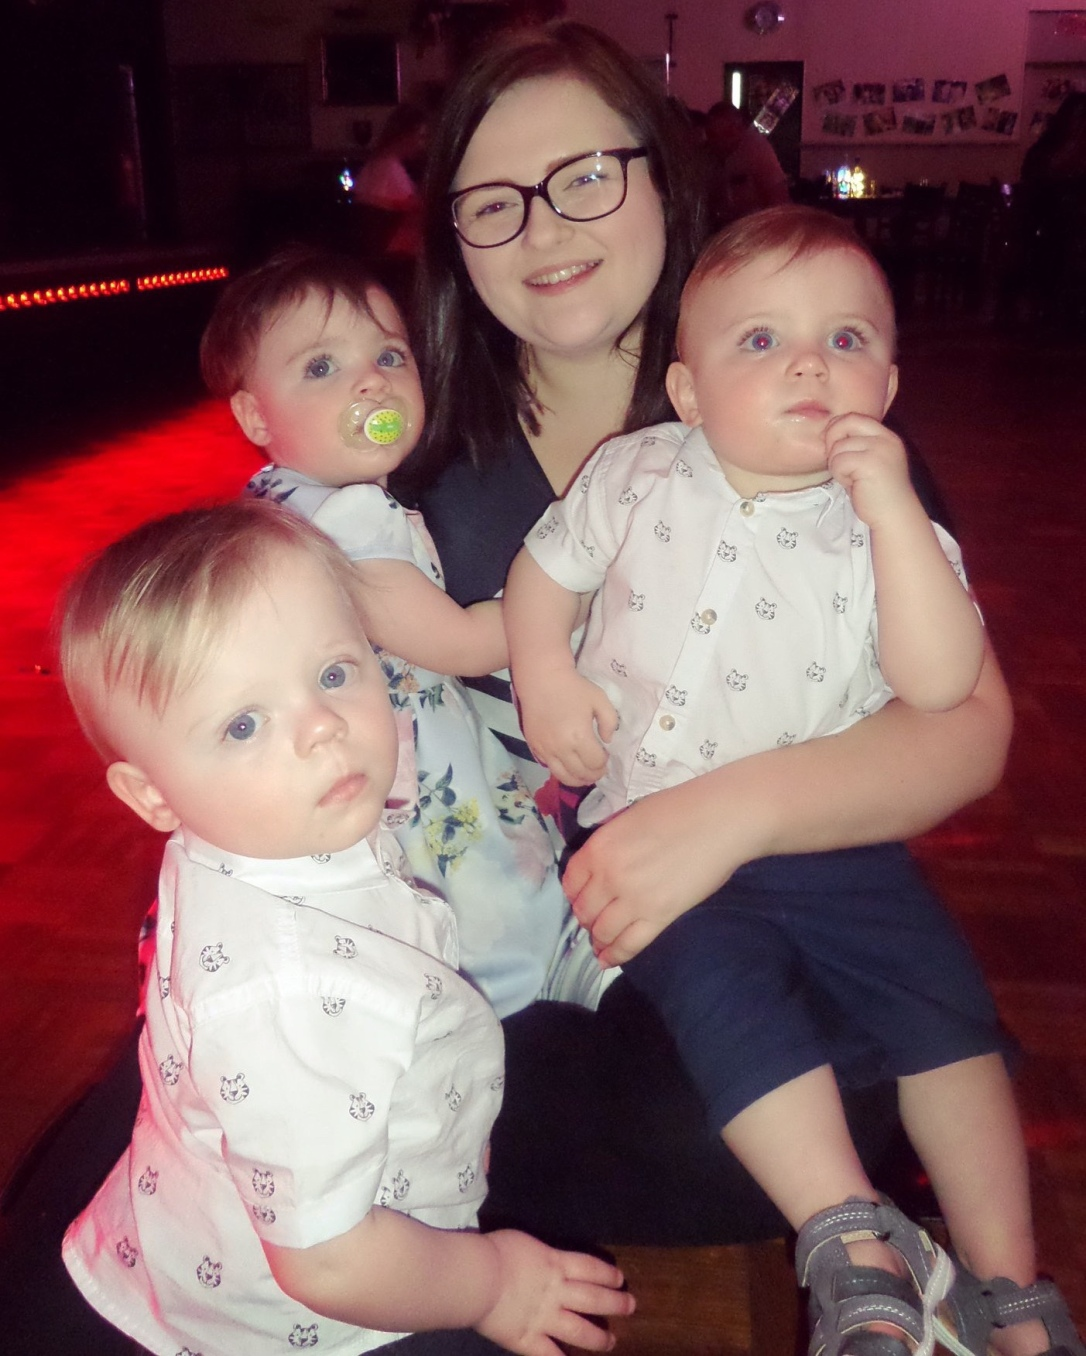 Nicola sat on the dance floor with Oliver, Mila and Joshua sat on her.